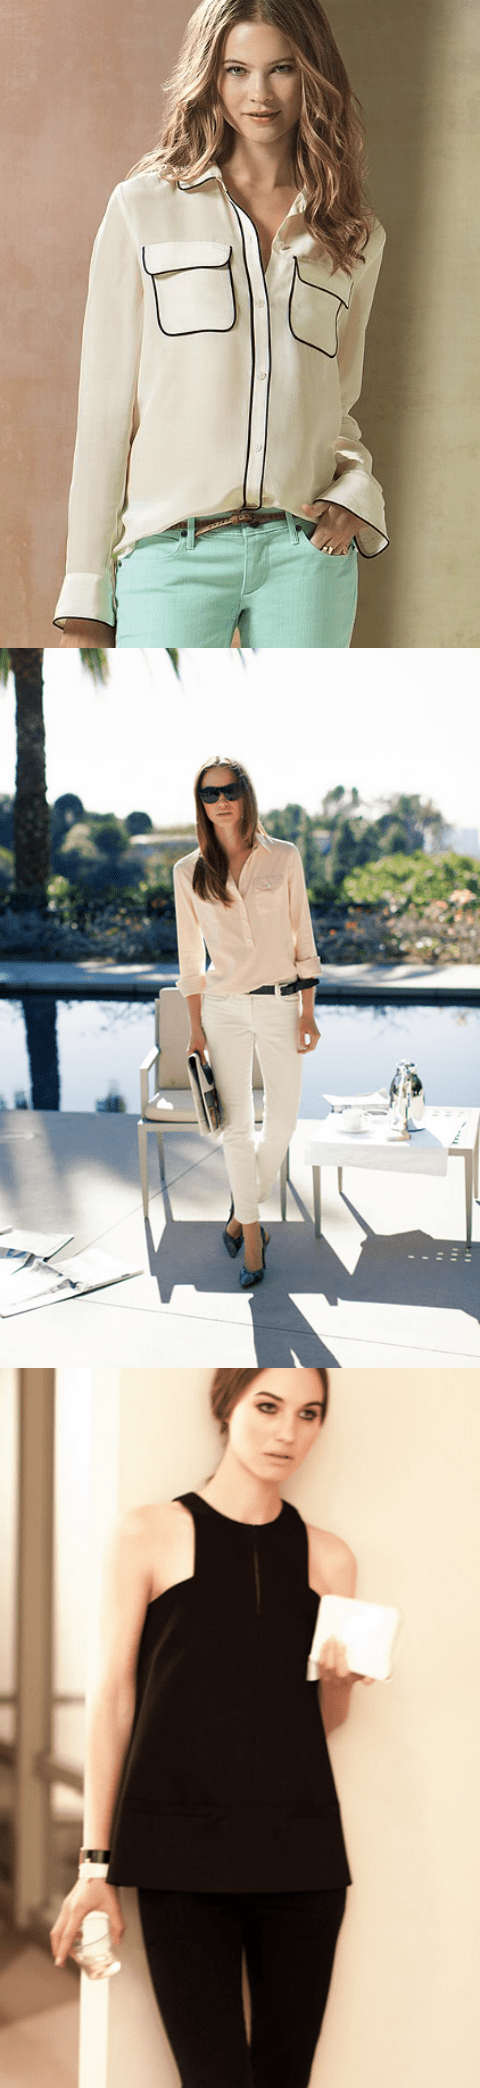 style inspiration, thereafterish, lux tops, lux lounge, luxury casual